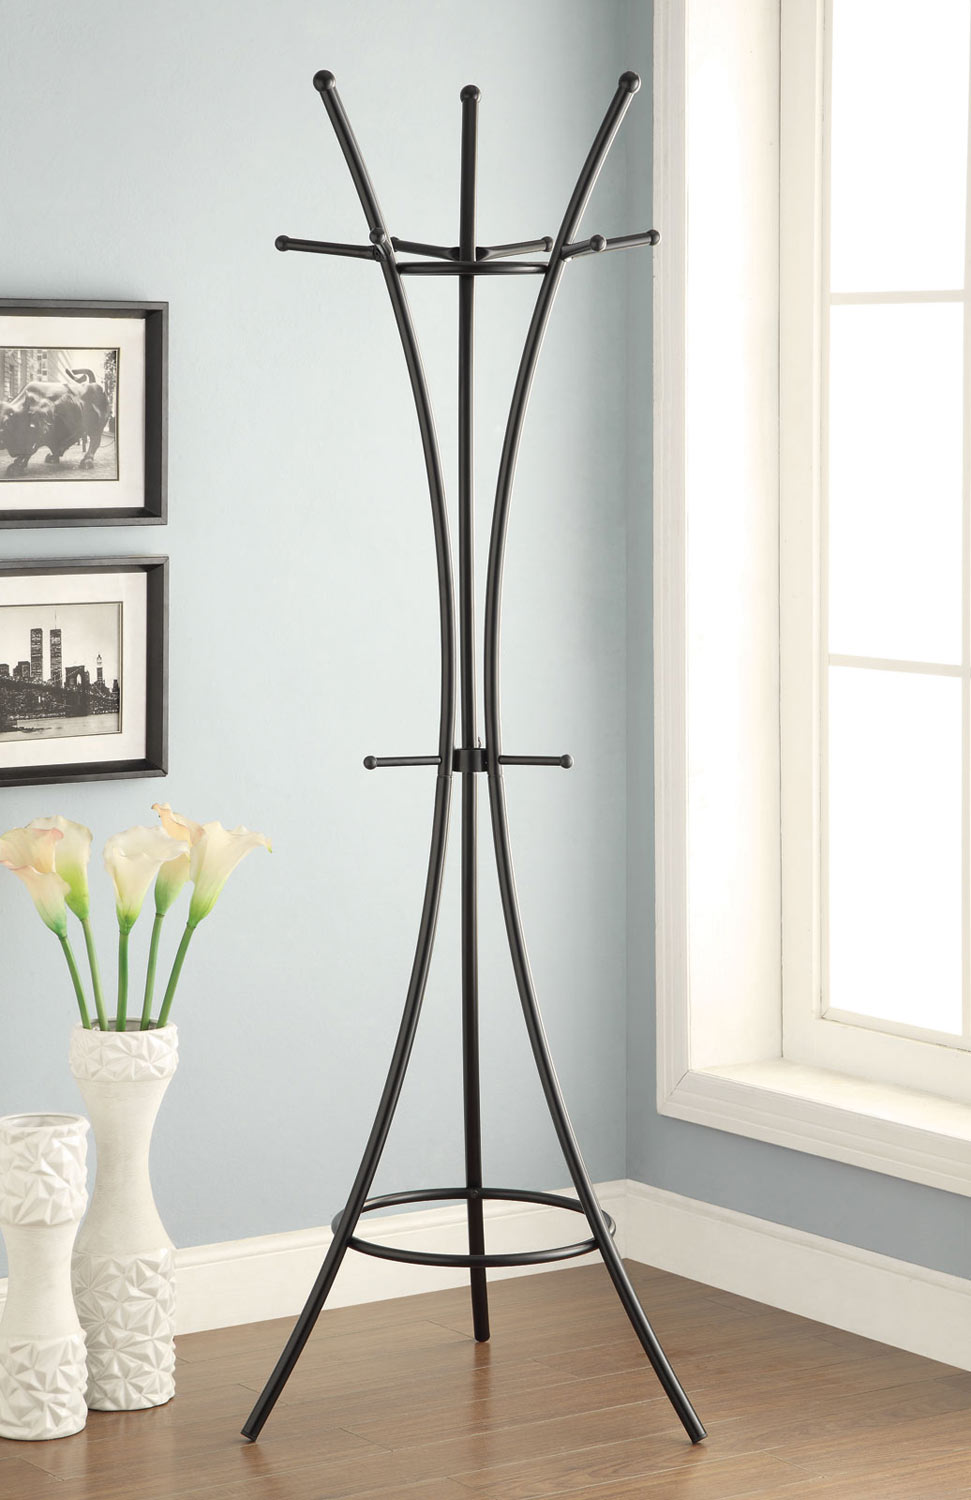 Coaster 900895 Coat Rack - Black